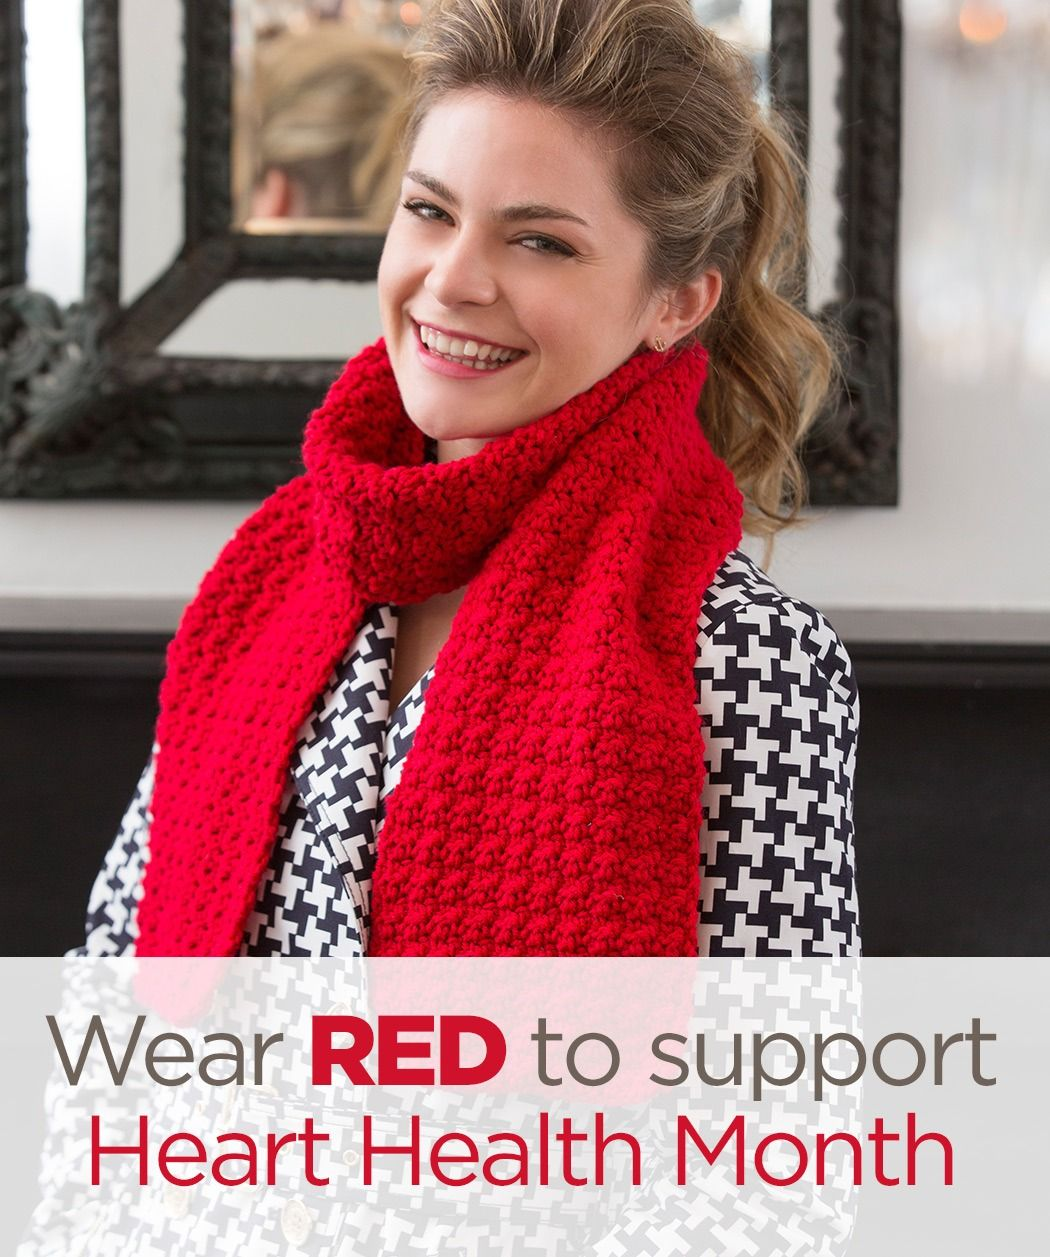 Wear red to support heart health month stitch a hug with red berry stitch scarf free crochet pattern from red heart yarns bankloansurffo Image collections